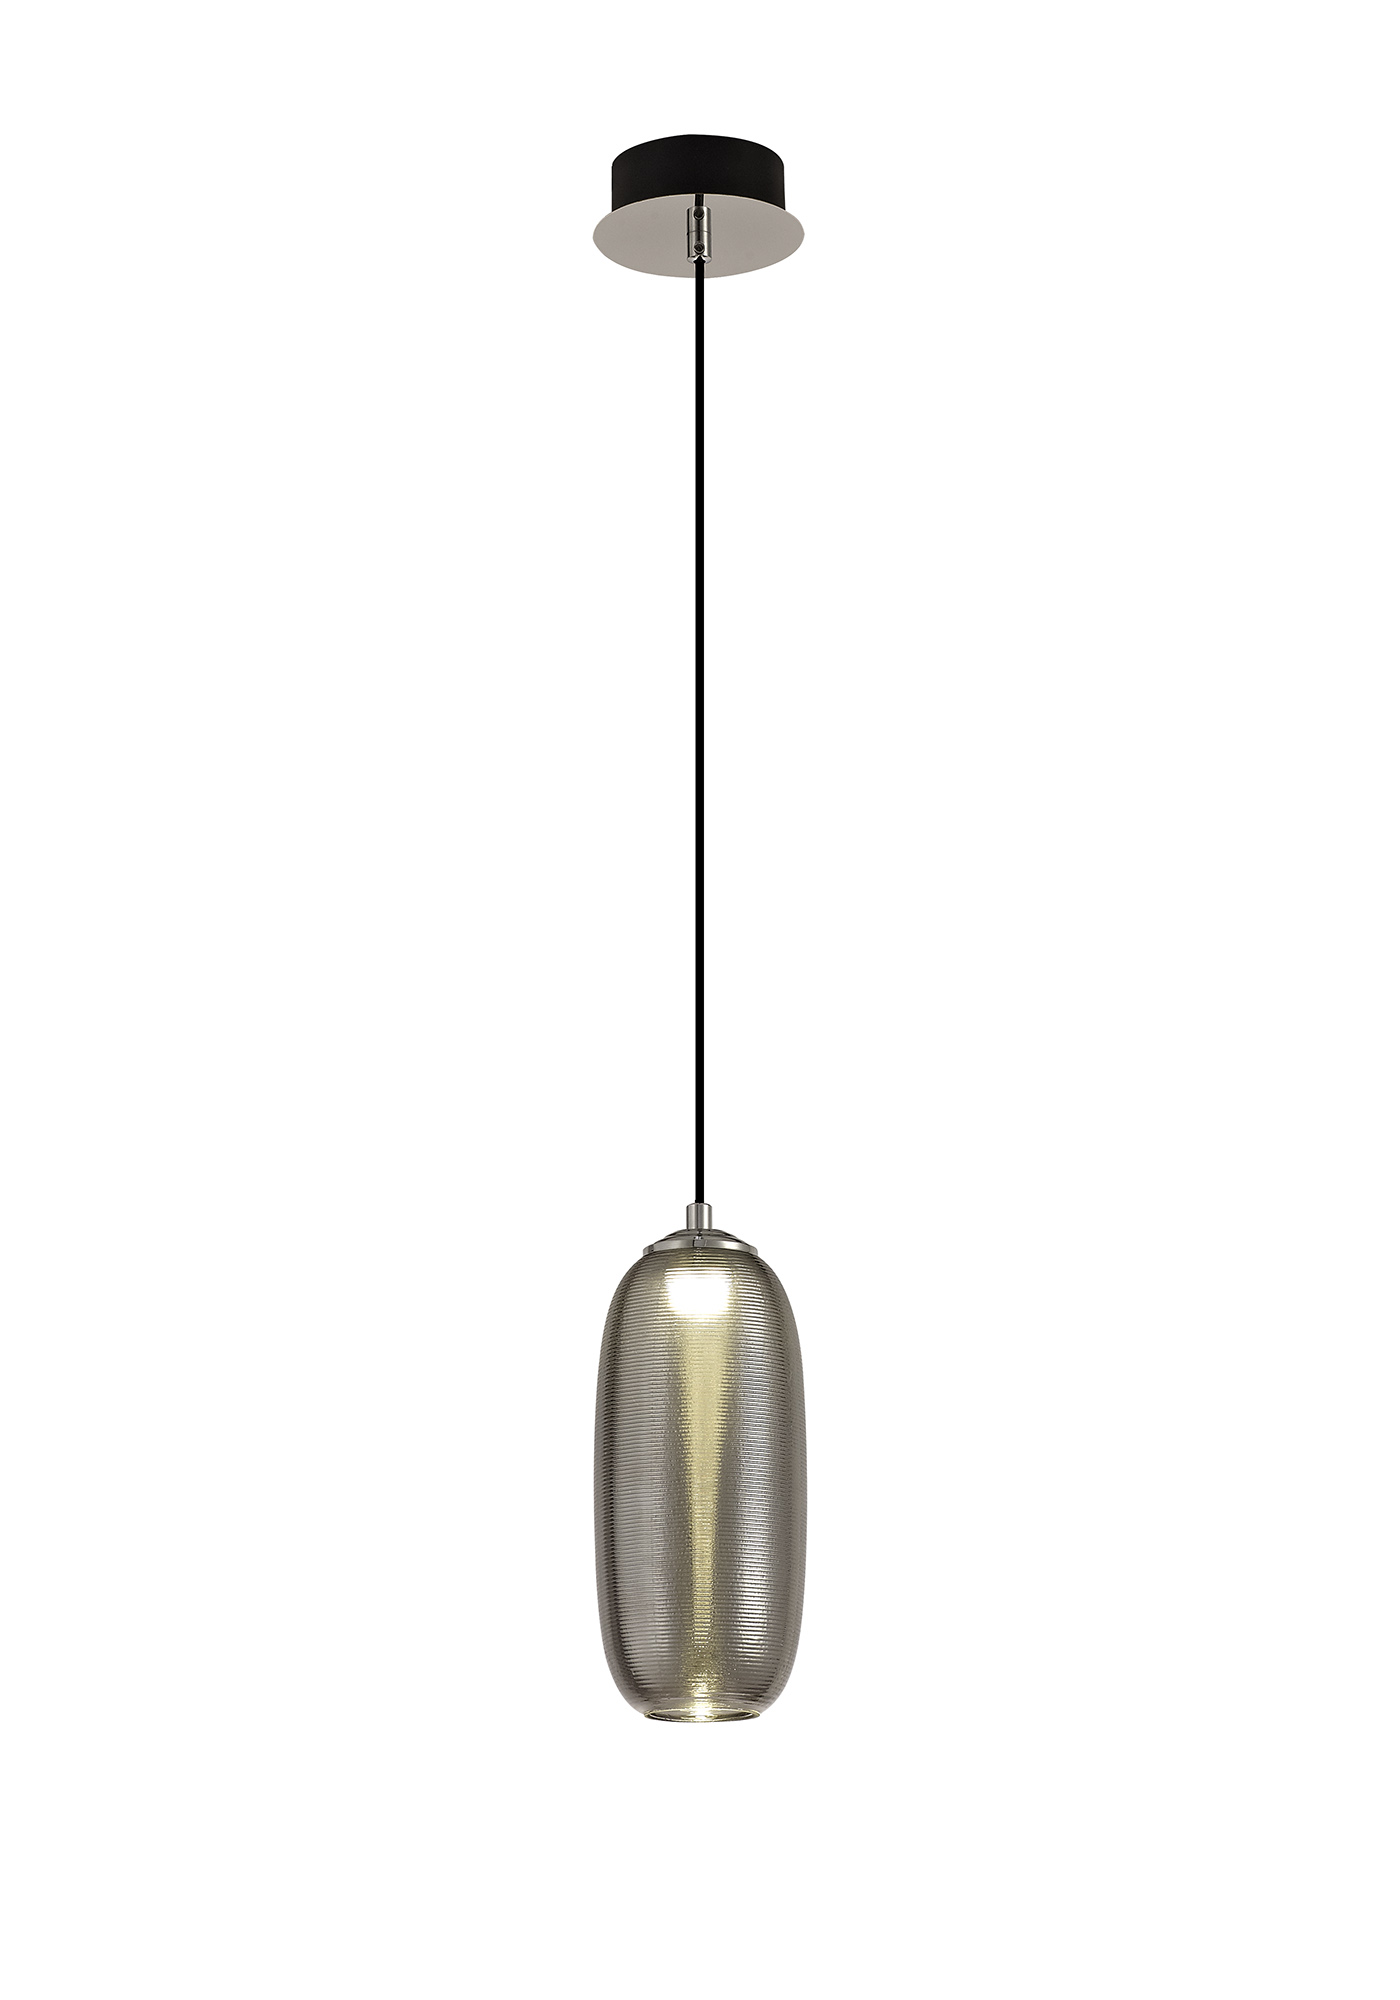 Pendant, 1 x 8W LED, 4000K, 720lm, 3yrs Warranty